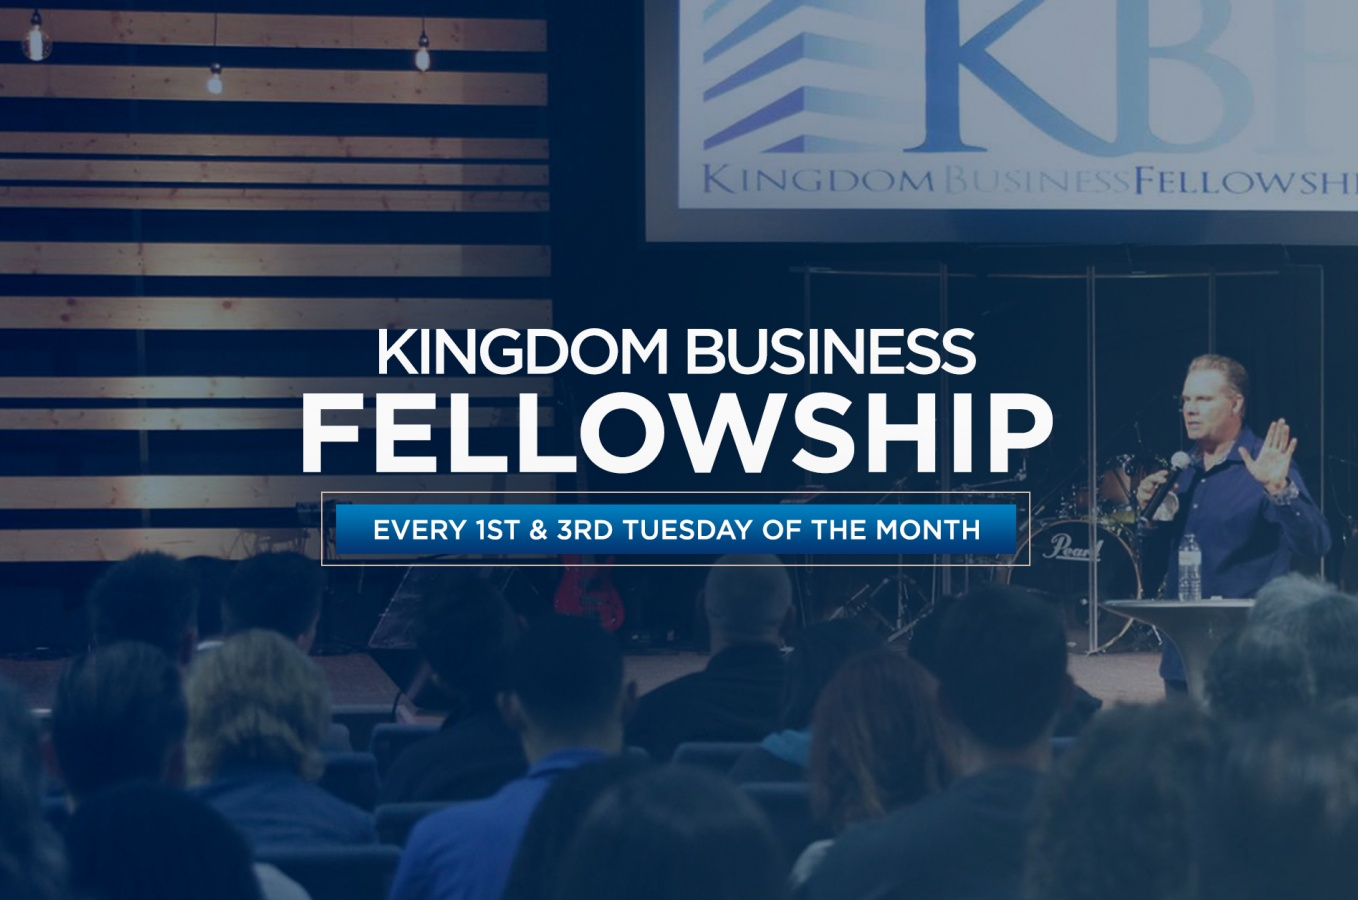 Kingdom Business Fellowship